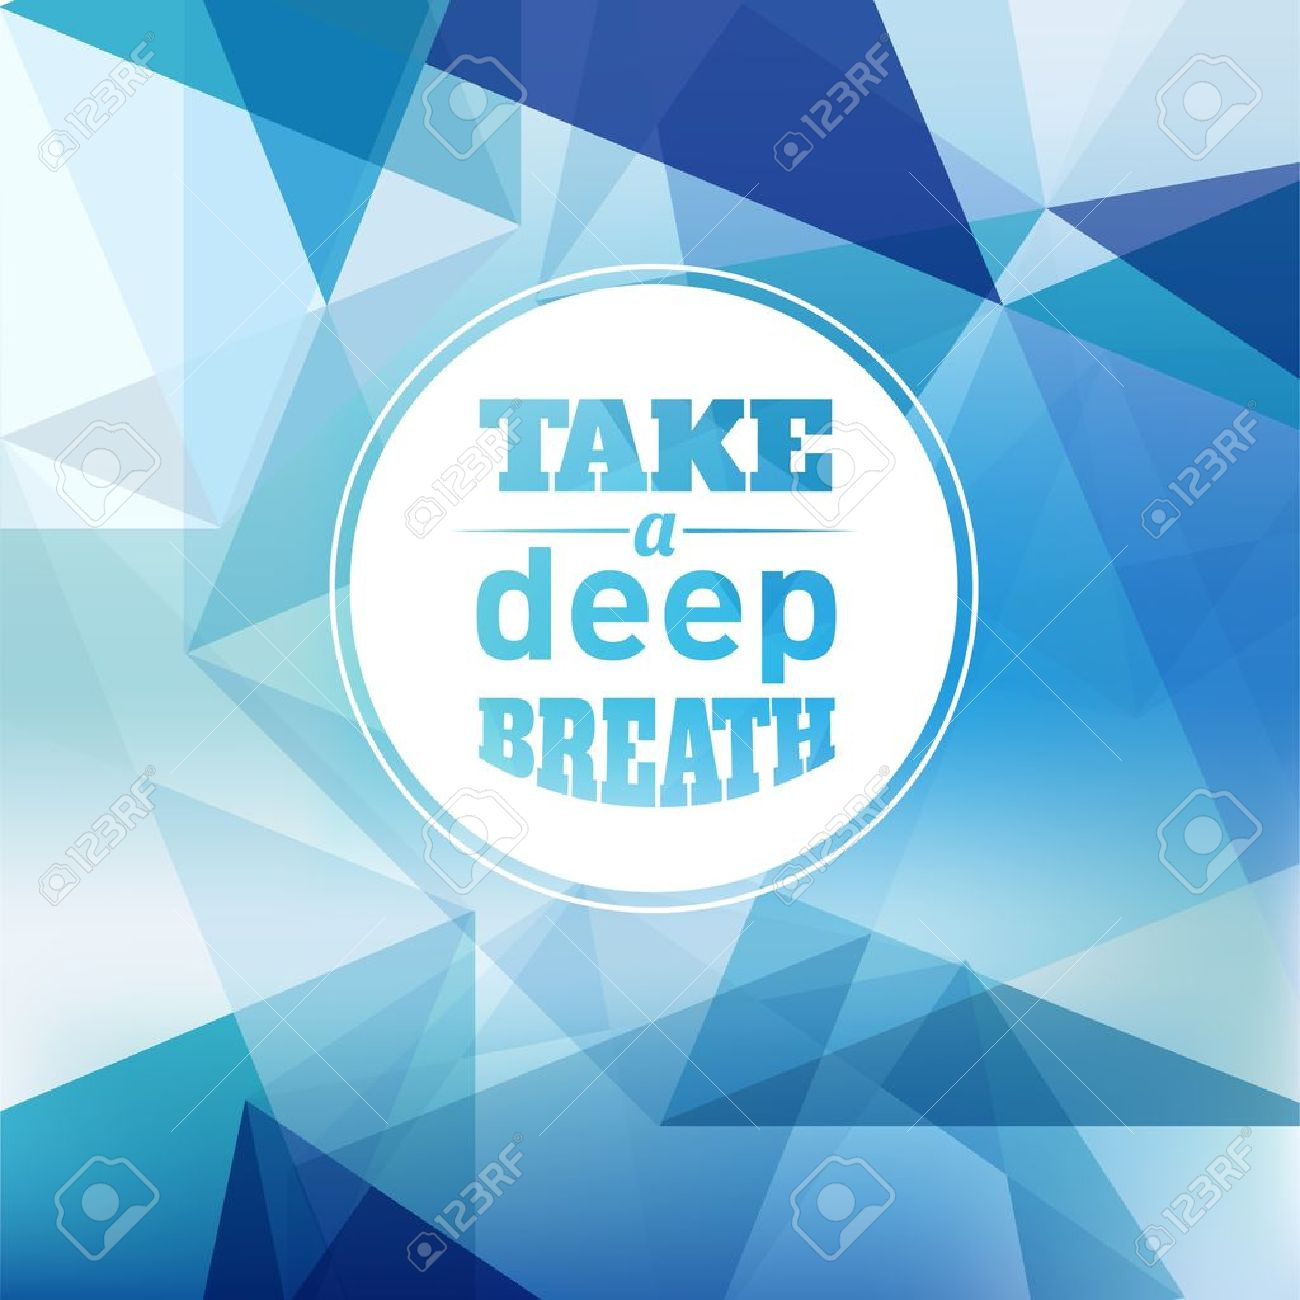 Take a Deep Breath - Design Layout Stock Vector - 20893558